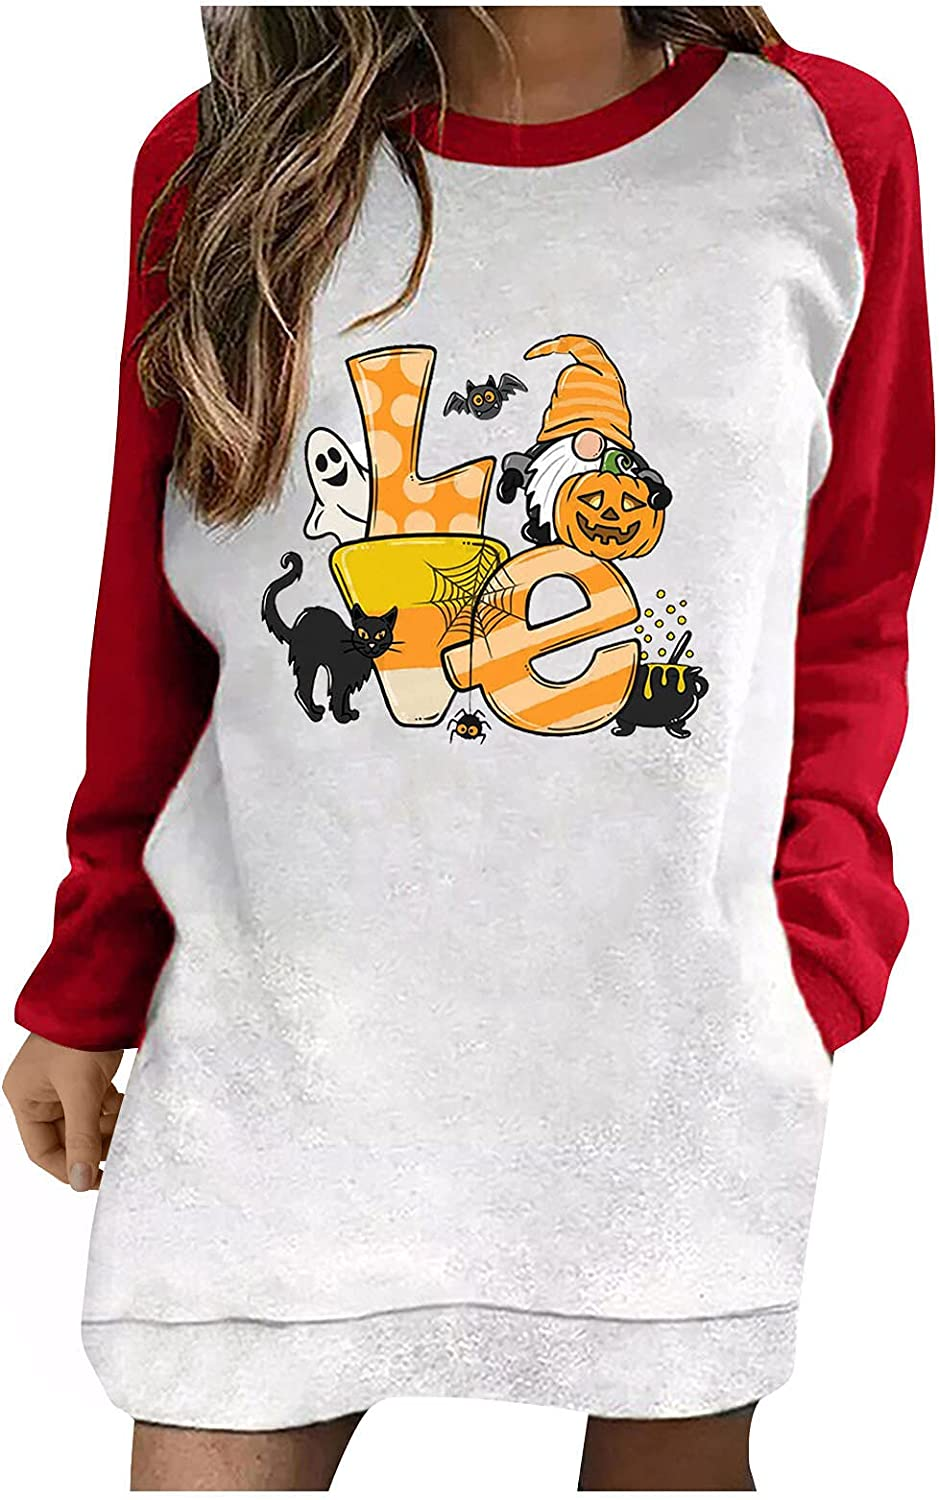 Women Halloween Long Sleeve Tunic Pumpkin Graphic Spring new work one after New Orleans Mall another Crewneck Tops